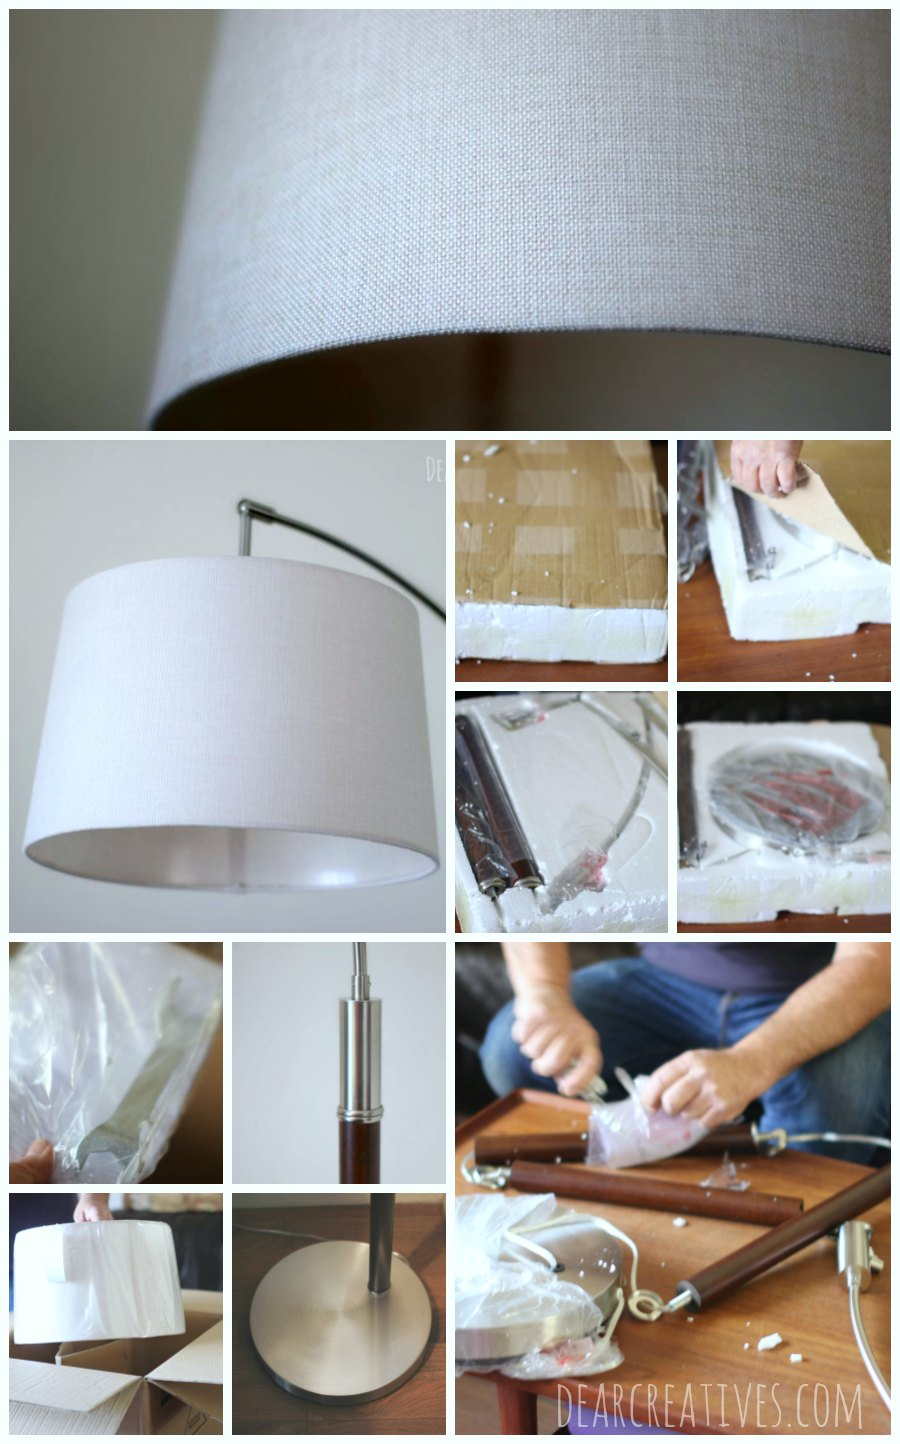 Home Decor Home Decor Accent Putting together a home decor accent piece lamp-reading lamp